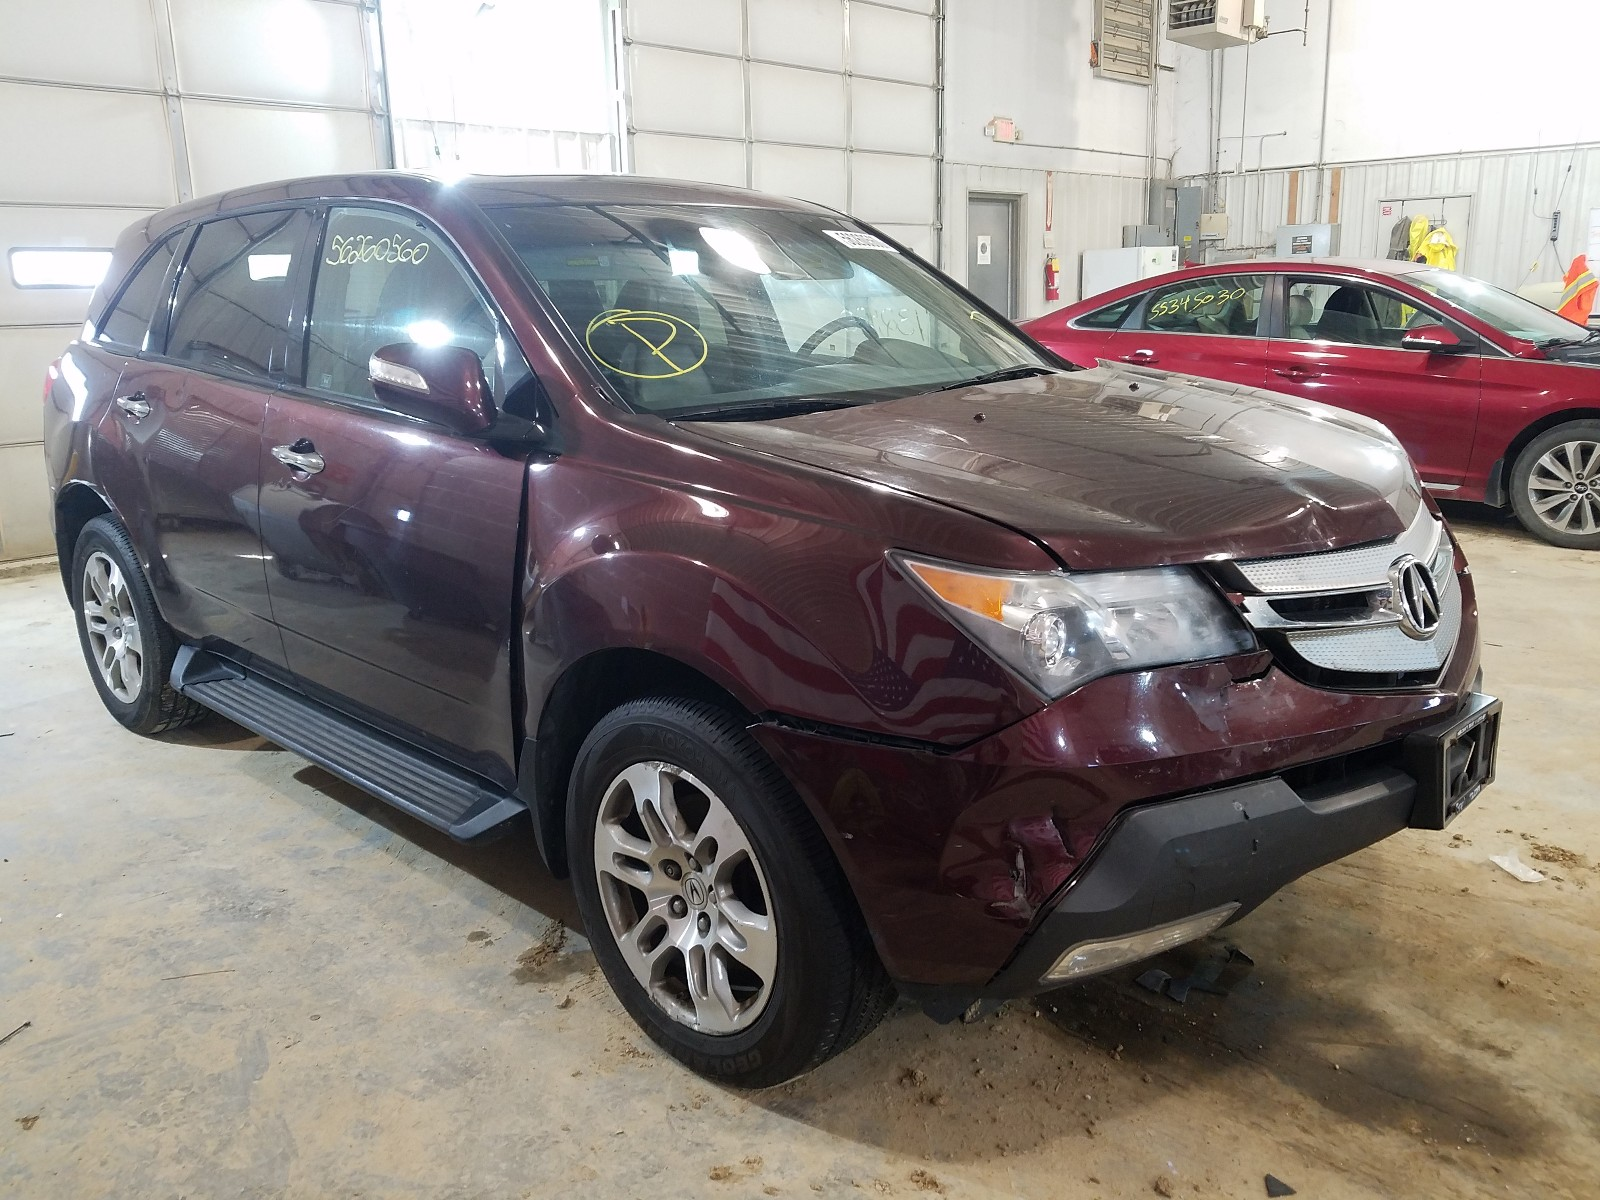 2009 Acura Mdx For Sale At Copart Columbia Mo Lot 56260560 Salvagereseller Com